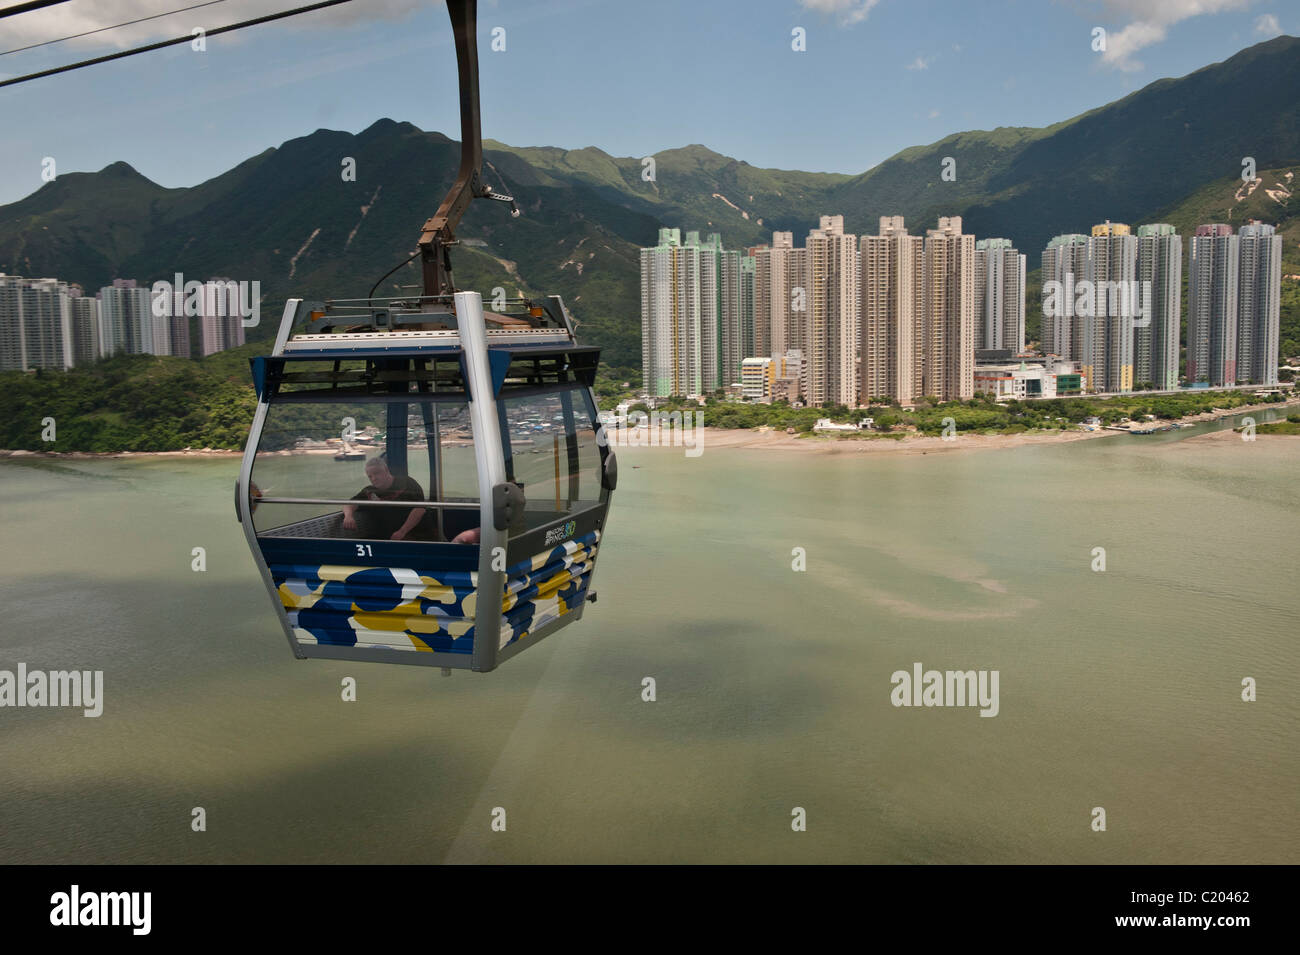 The Ngong Ping 360 is a tourism project on Lantau Island in Hong Kong. - Stock Image